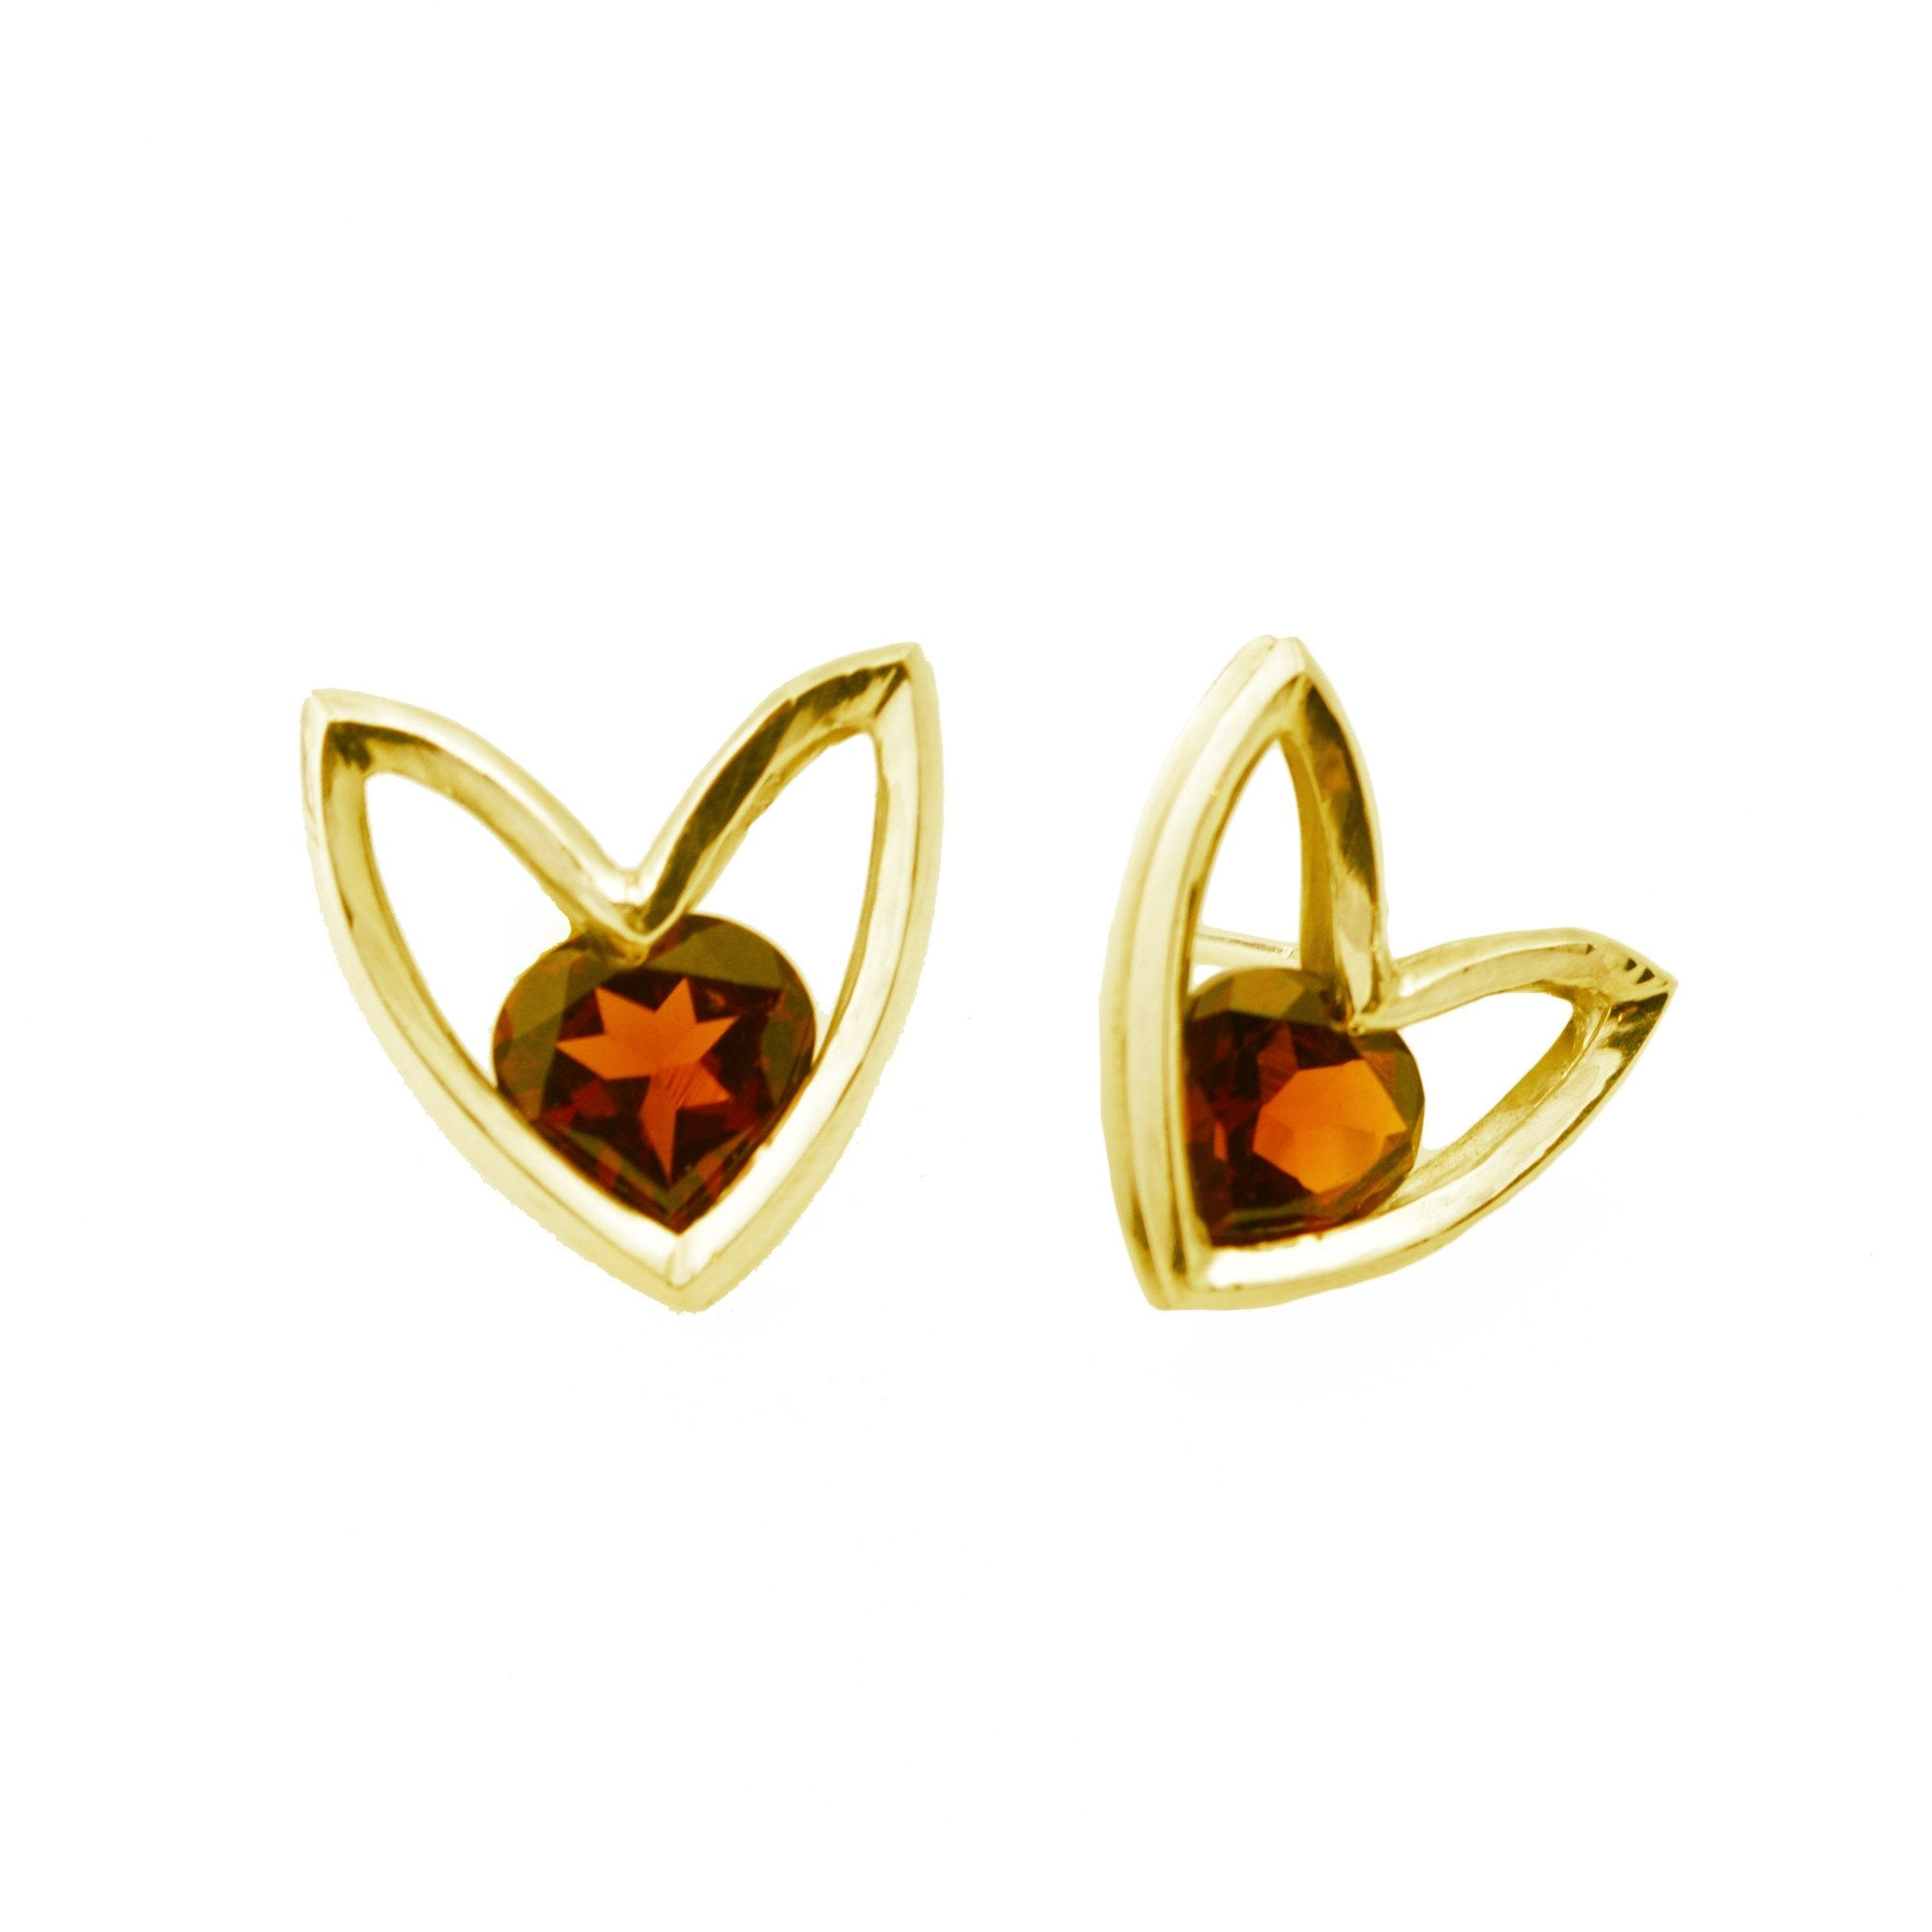 Flora-form Heart Stud in 14k Gold and Garnet Heart